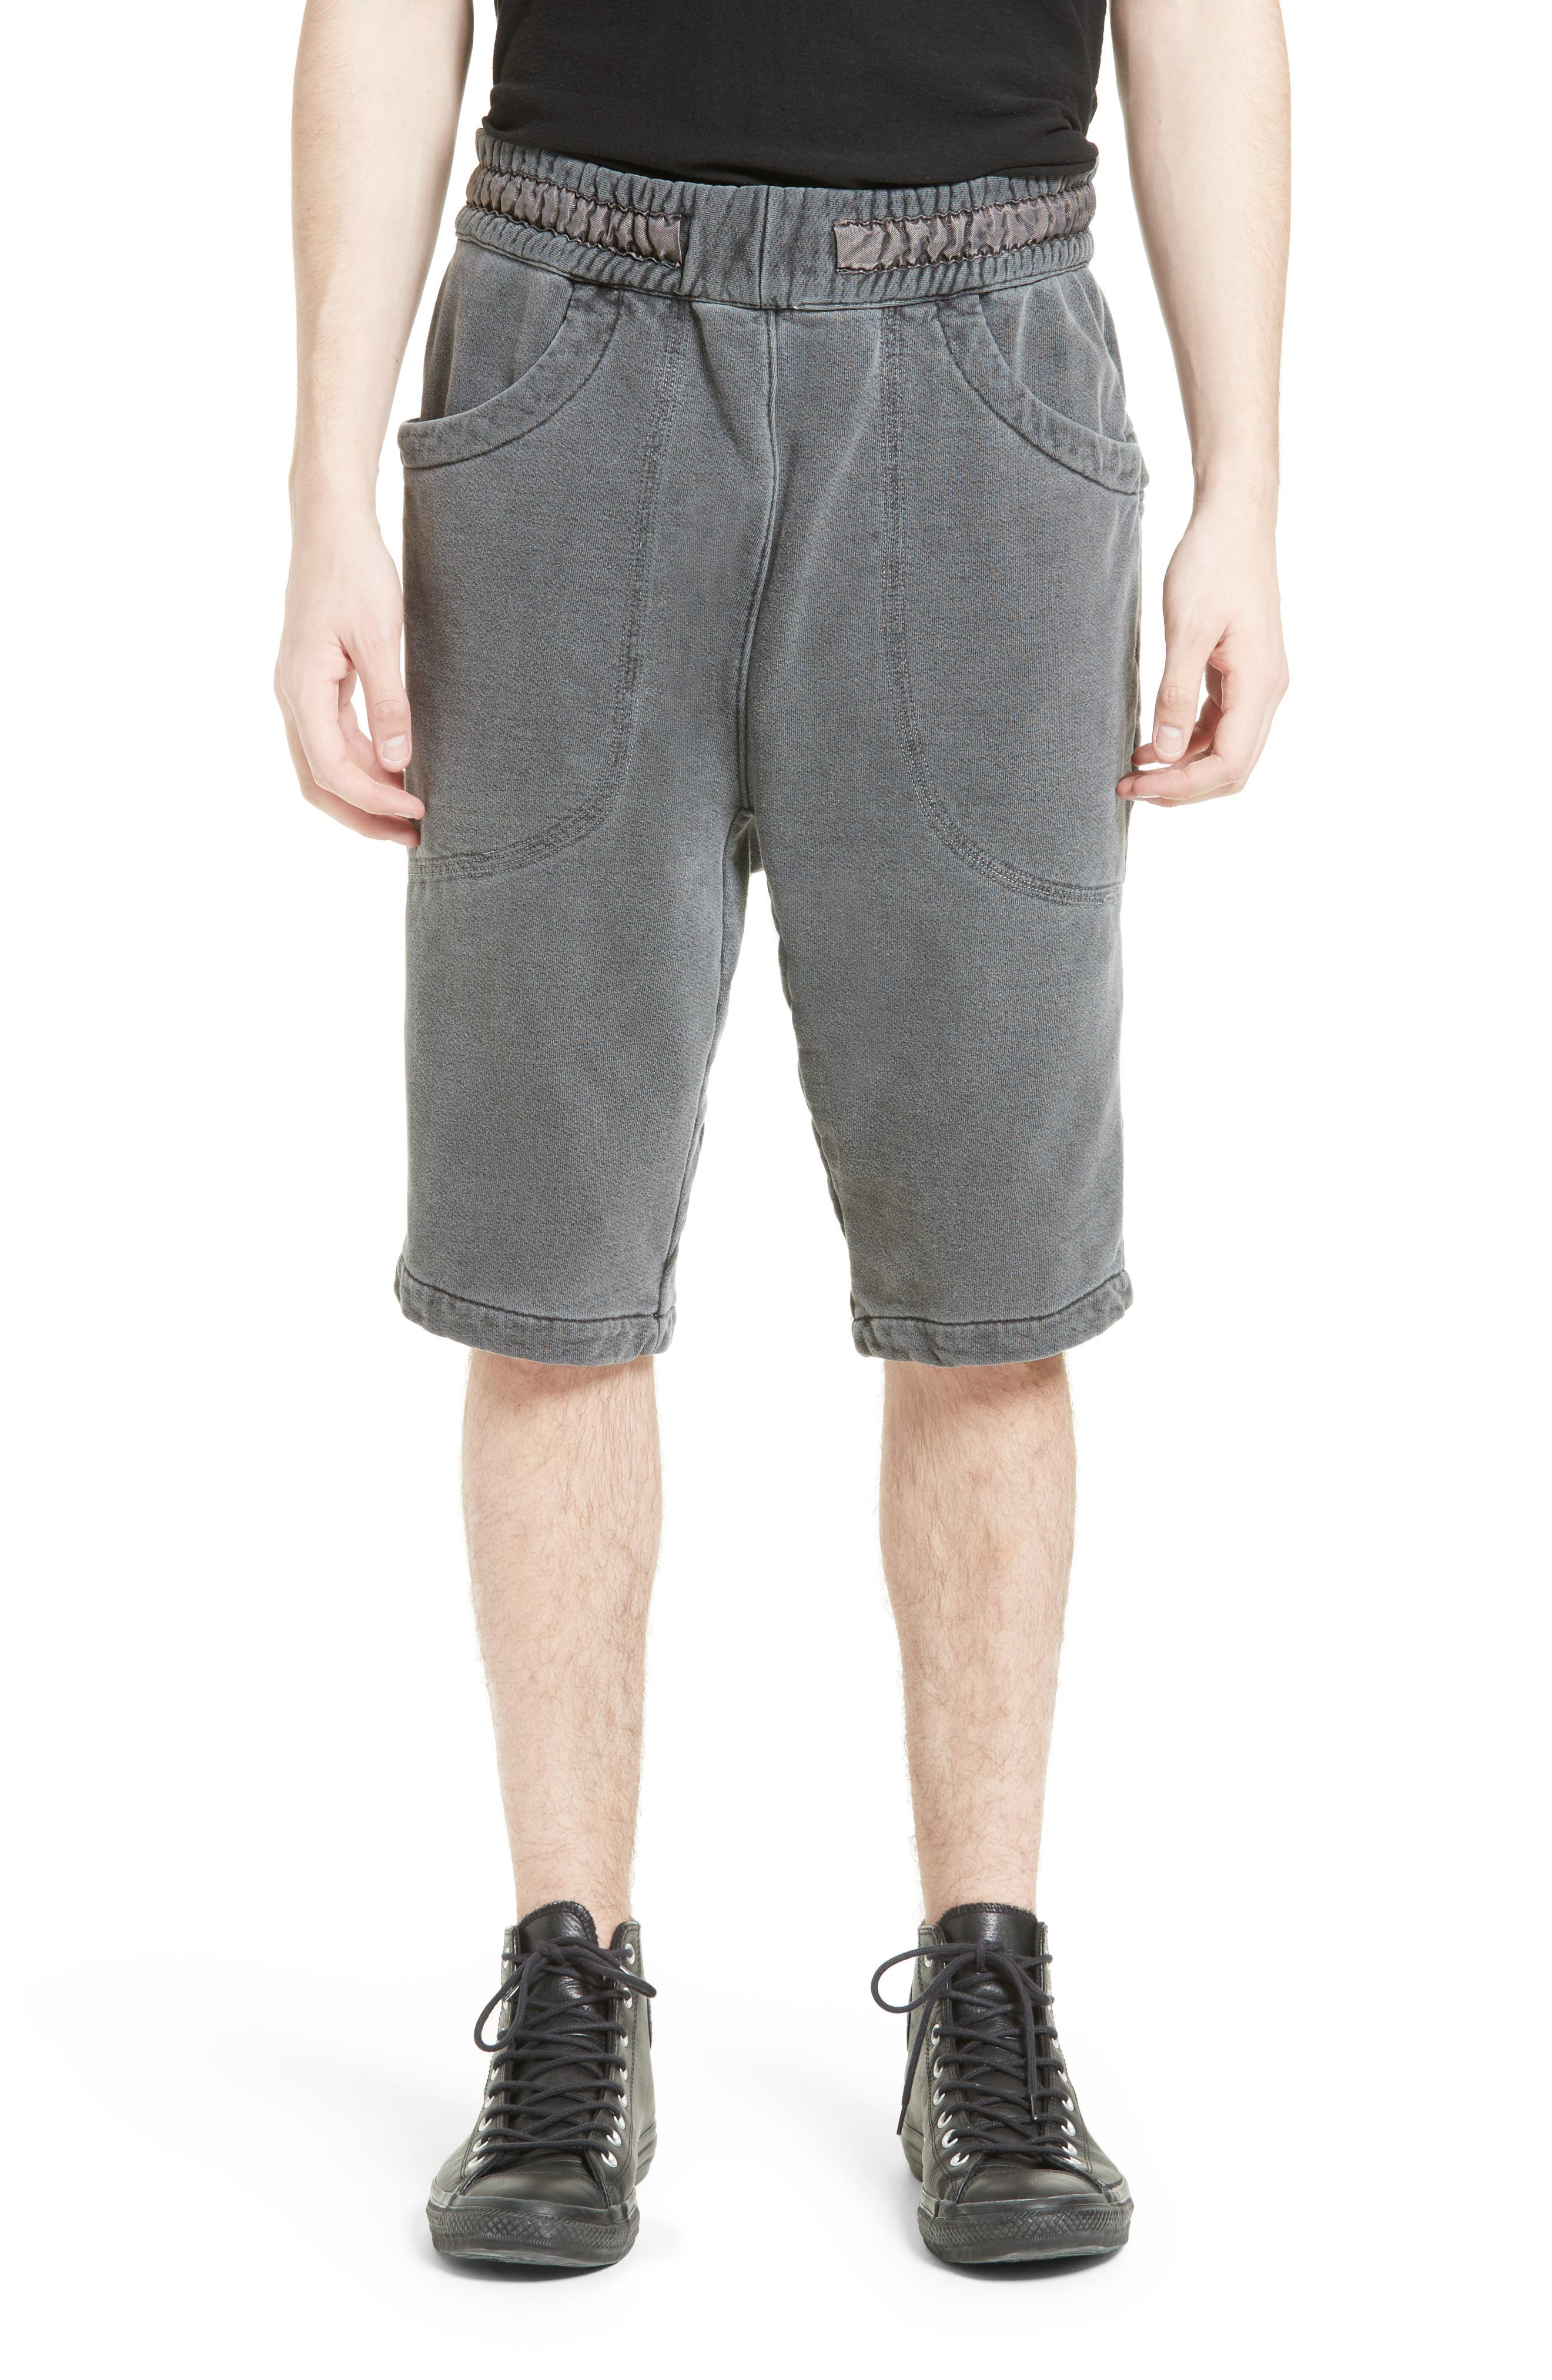 Quark Sweat Shorts,                             Main thumbnail 1, color,                             001